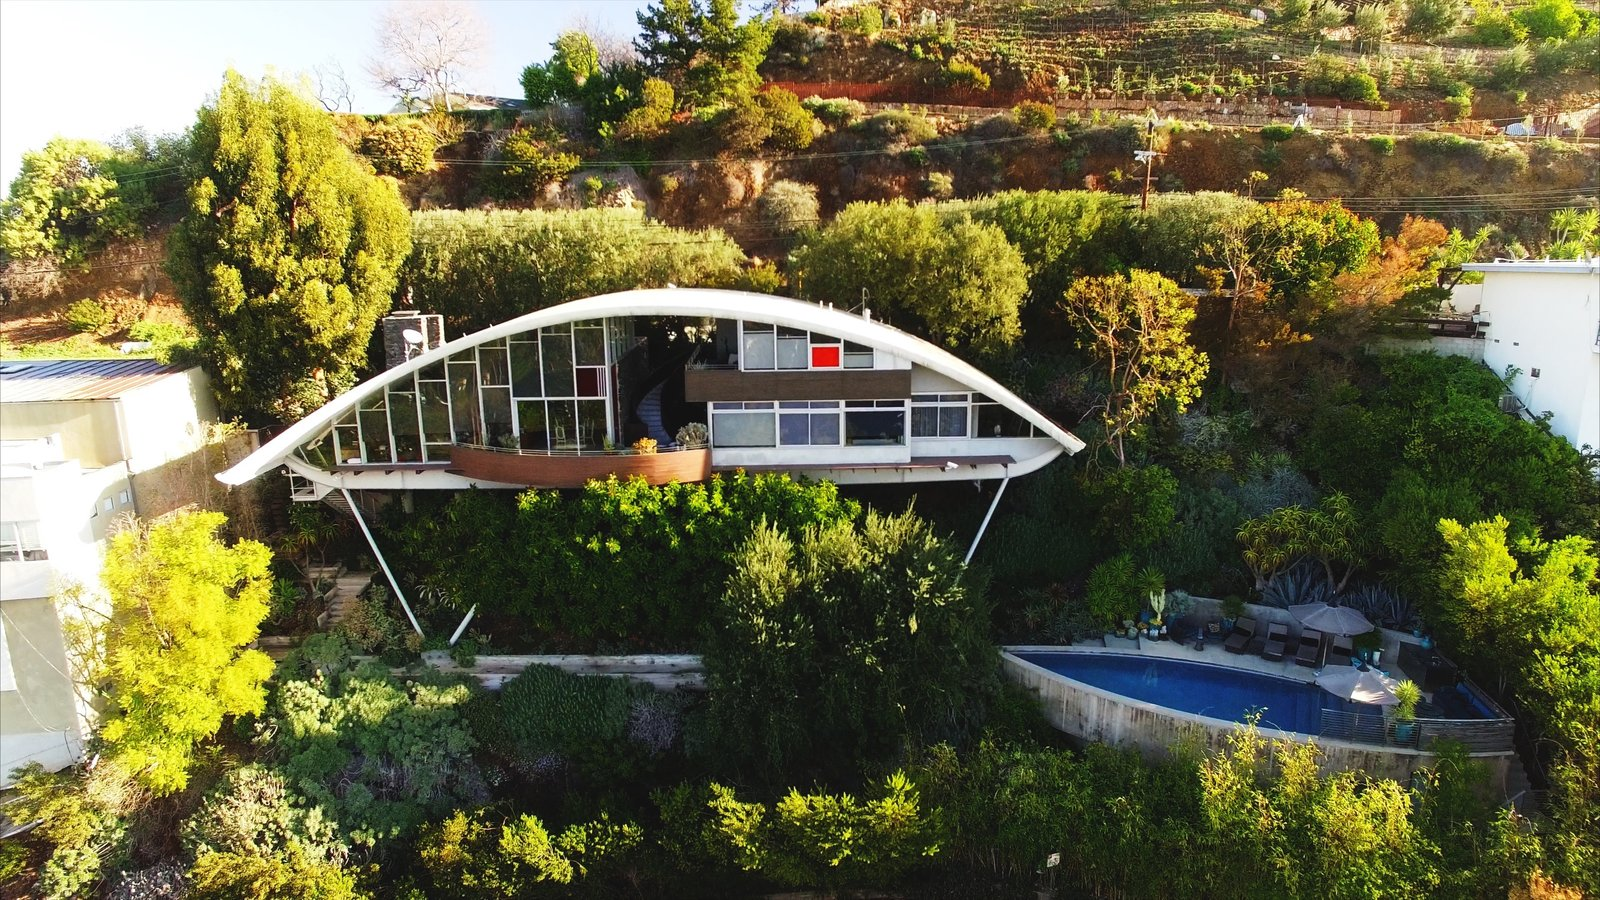 The pool at the bottom of the property did not exist when Mcllwee bought the house, even though Lautner had originally planned for it to be there. Mcllwee and Marmol Radziner used Lautner's original drawings to actually build it. Better late than never.